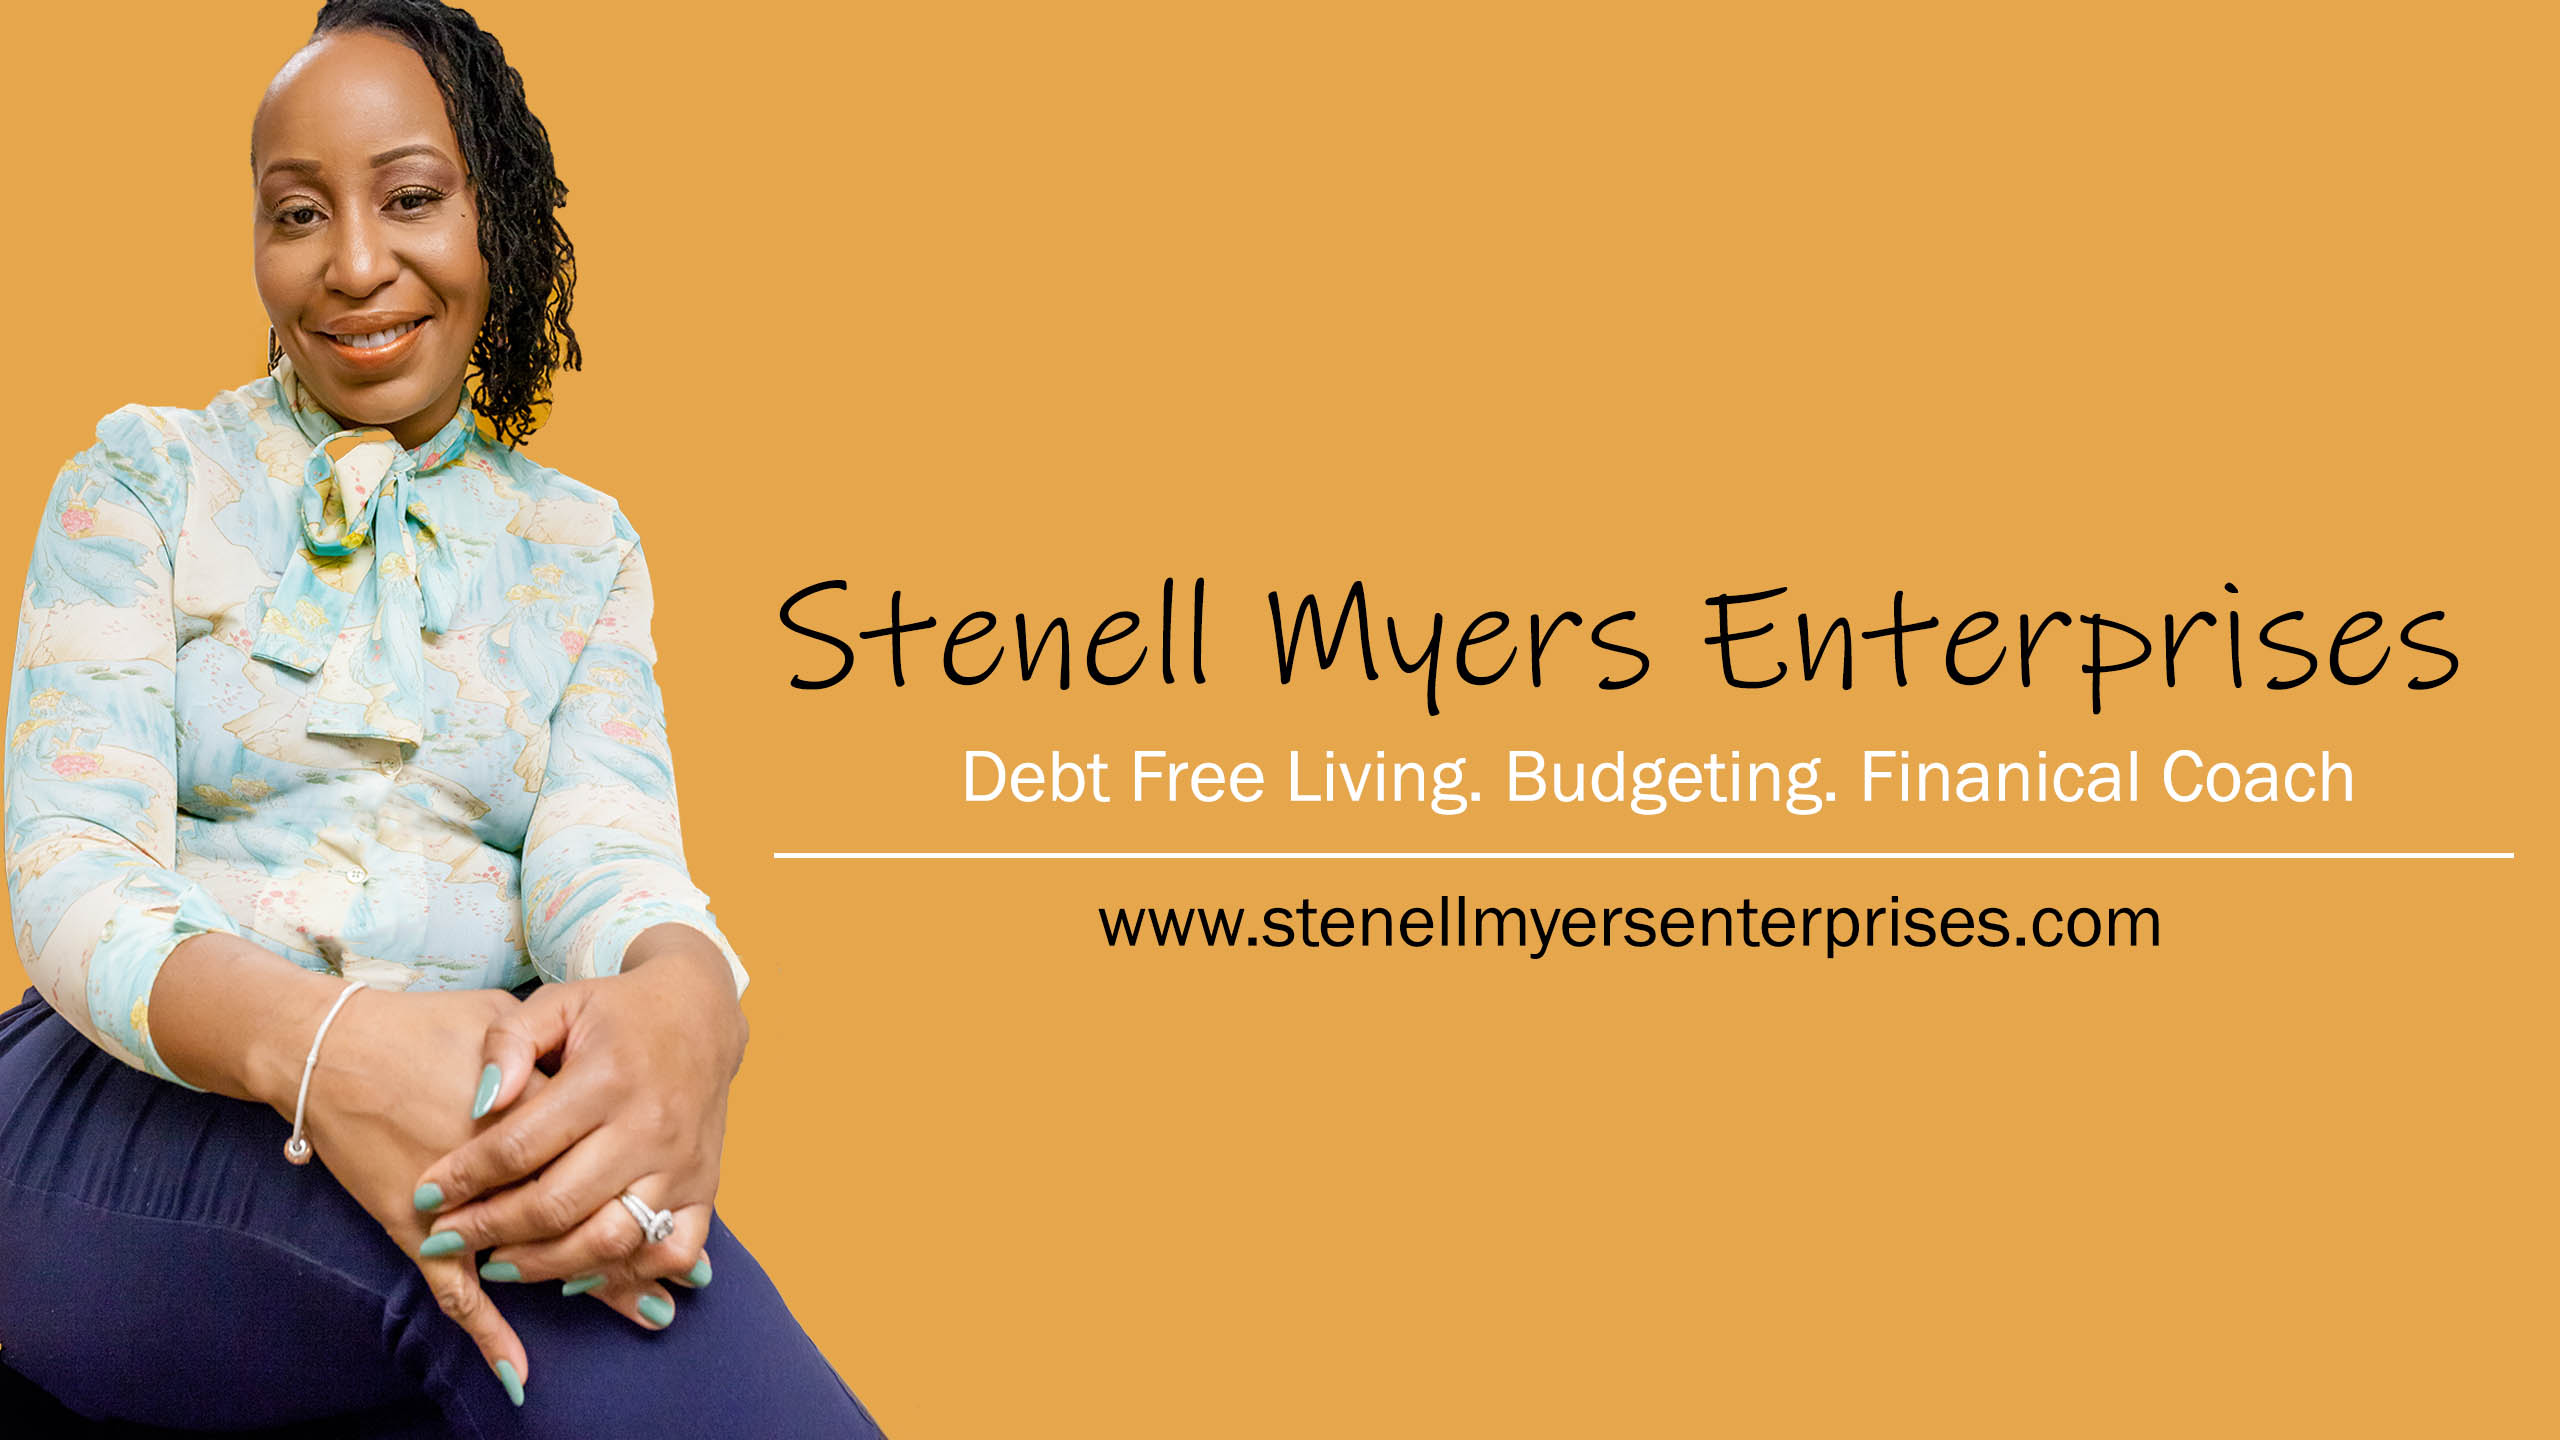 Stenell Myers